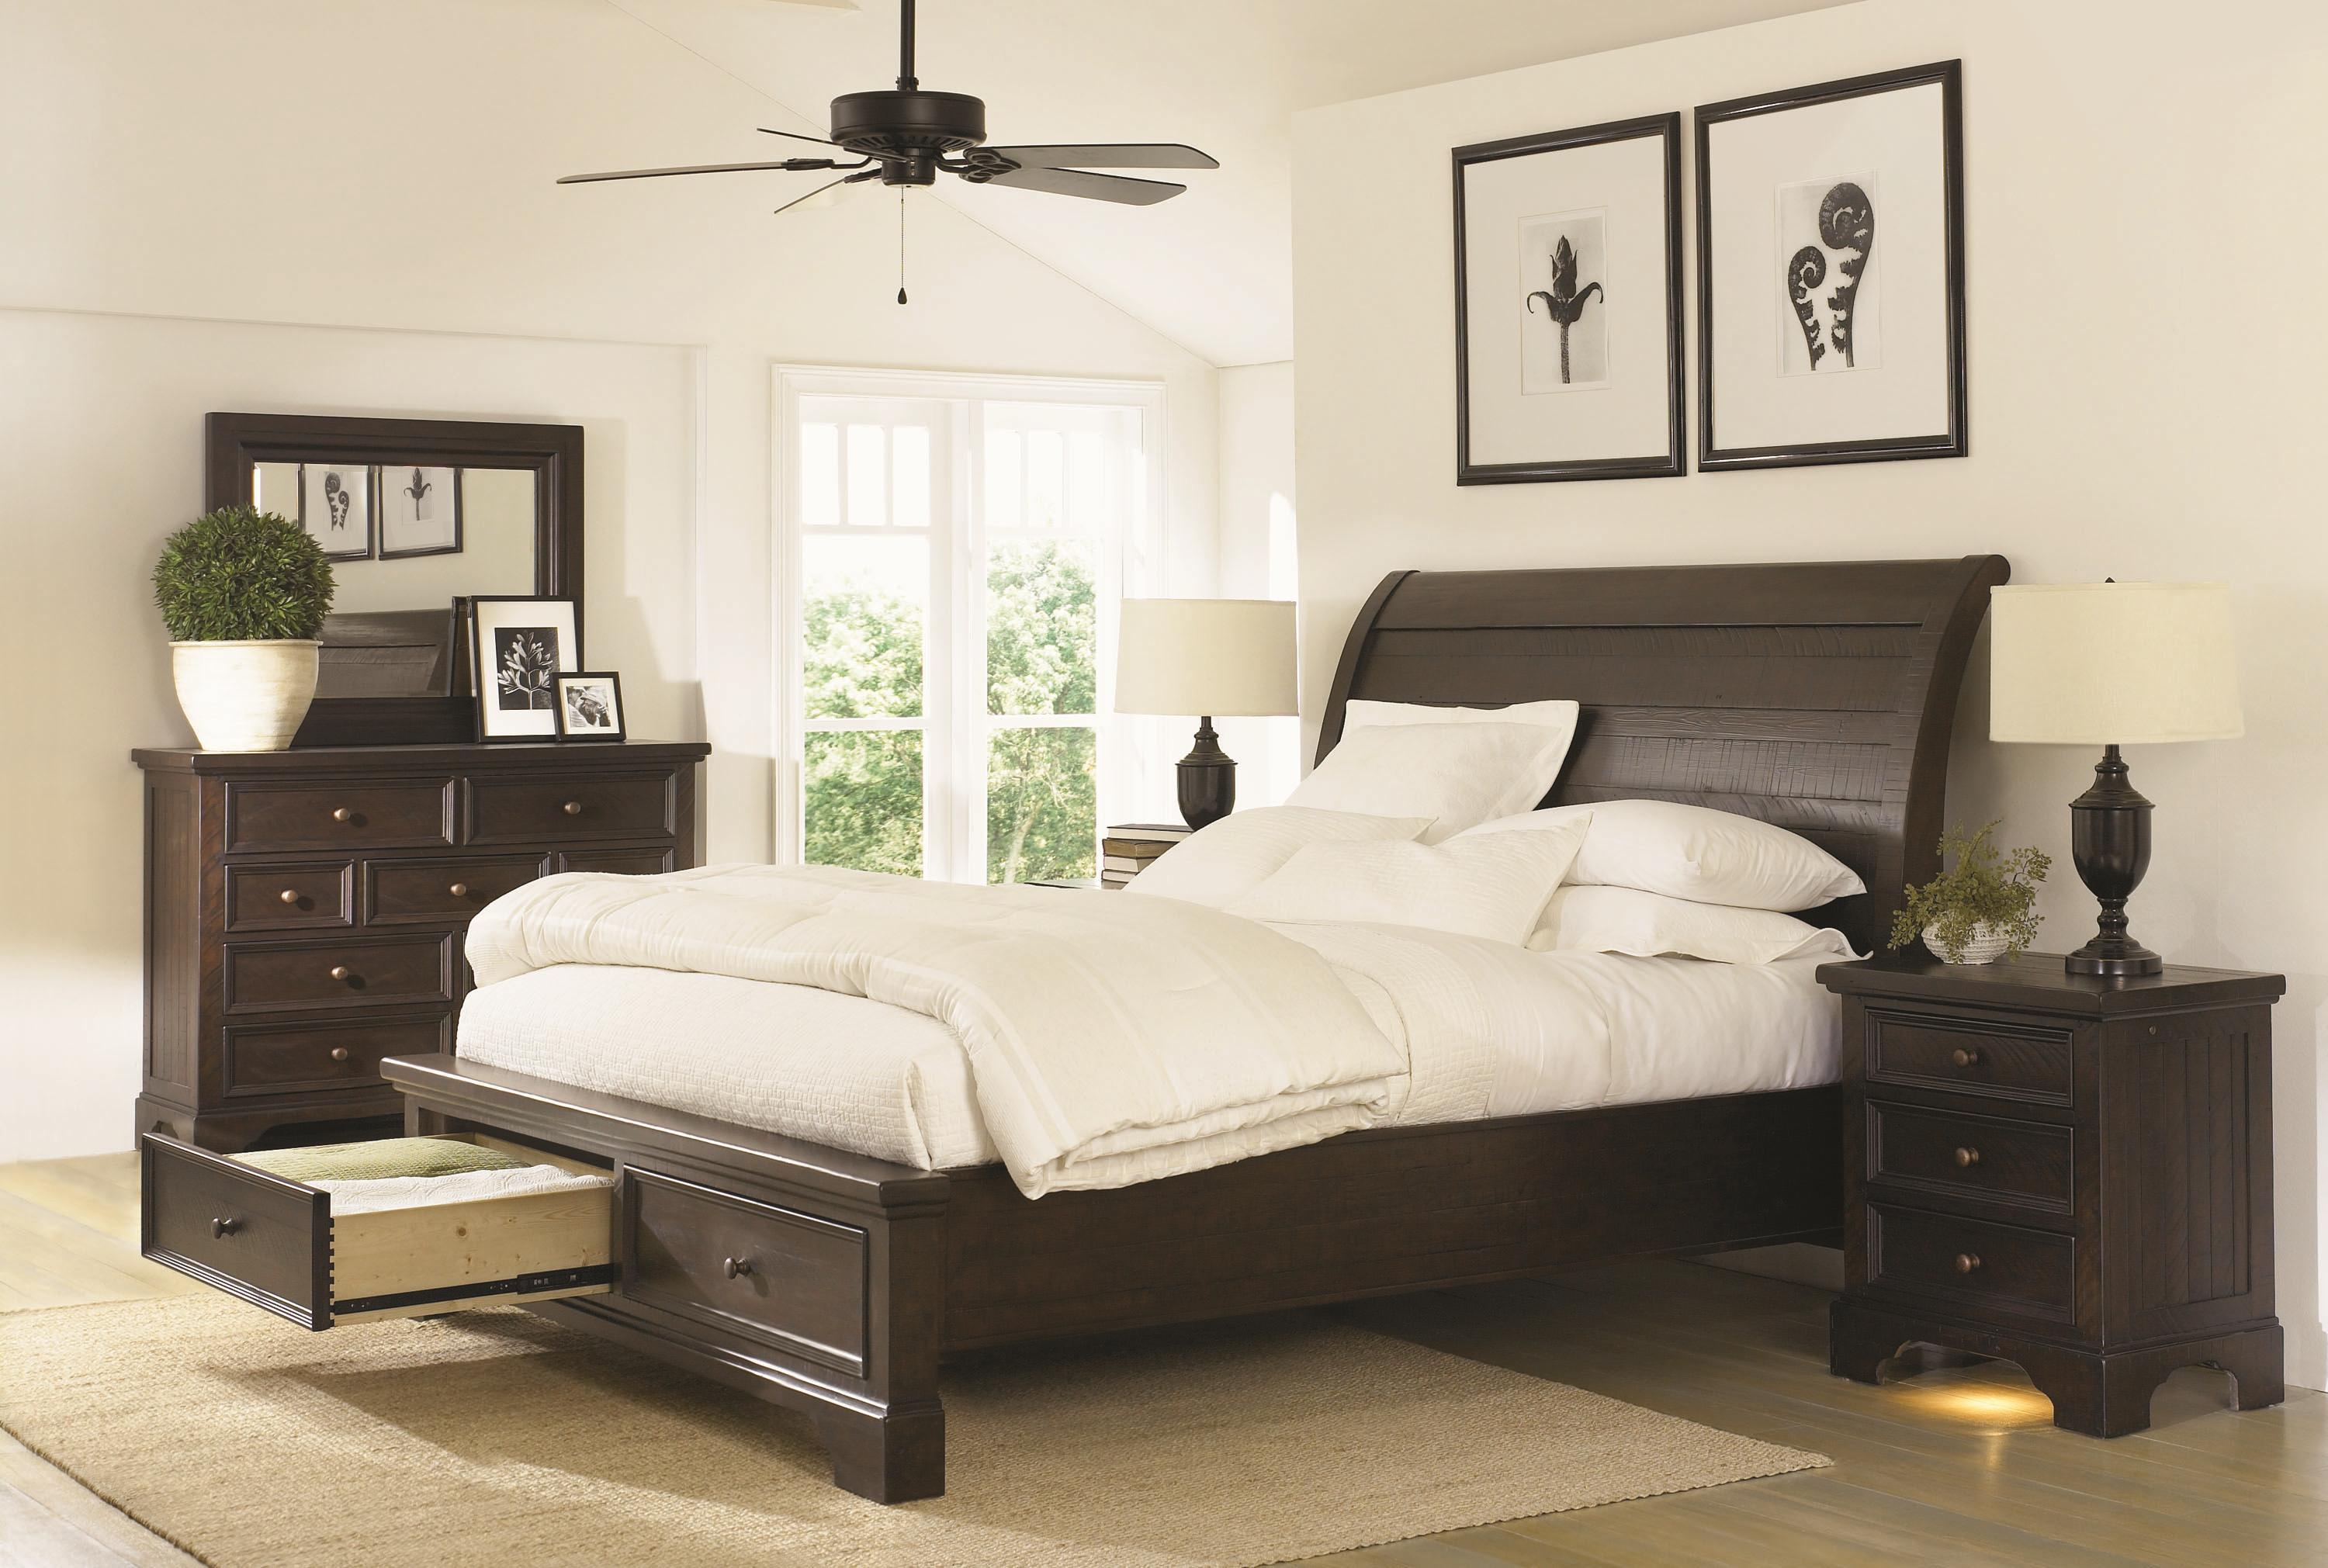 King Sleigh Bed With Under Bed Storage Drawers By Aspenhome Wolf